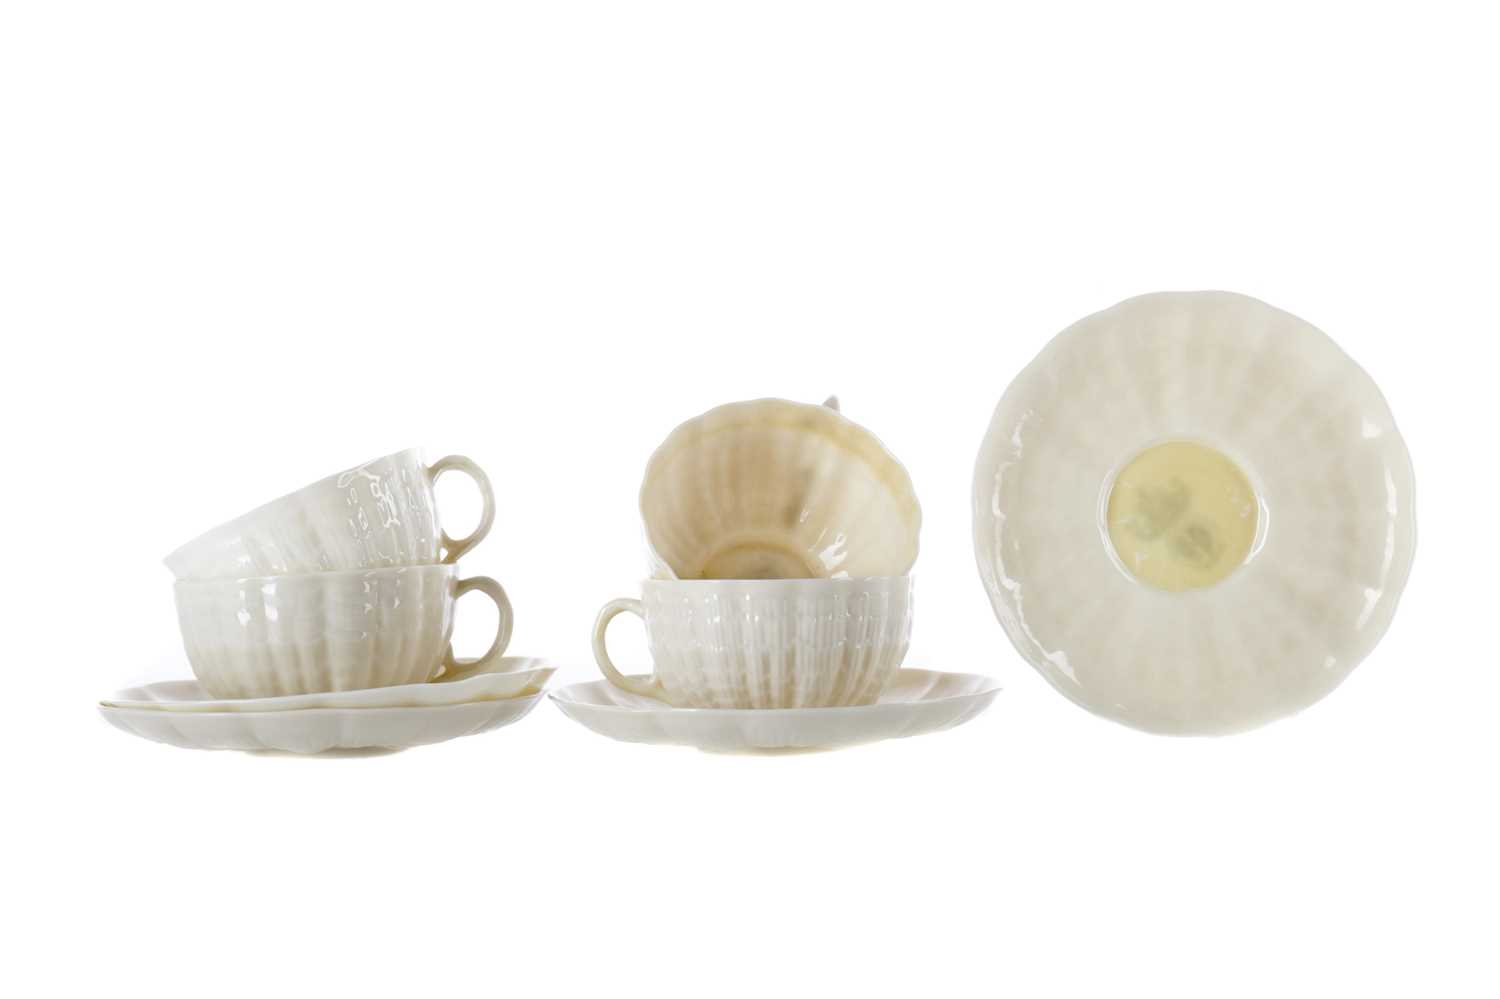 Lot 1100 - A SET OF FOUR BELLEEK BELLEEK TRIDACNA CUPS AND SAUCERS